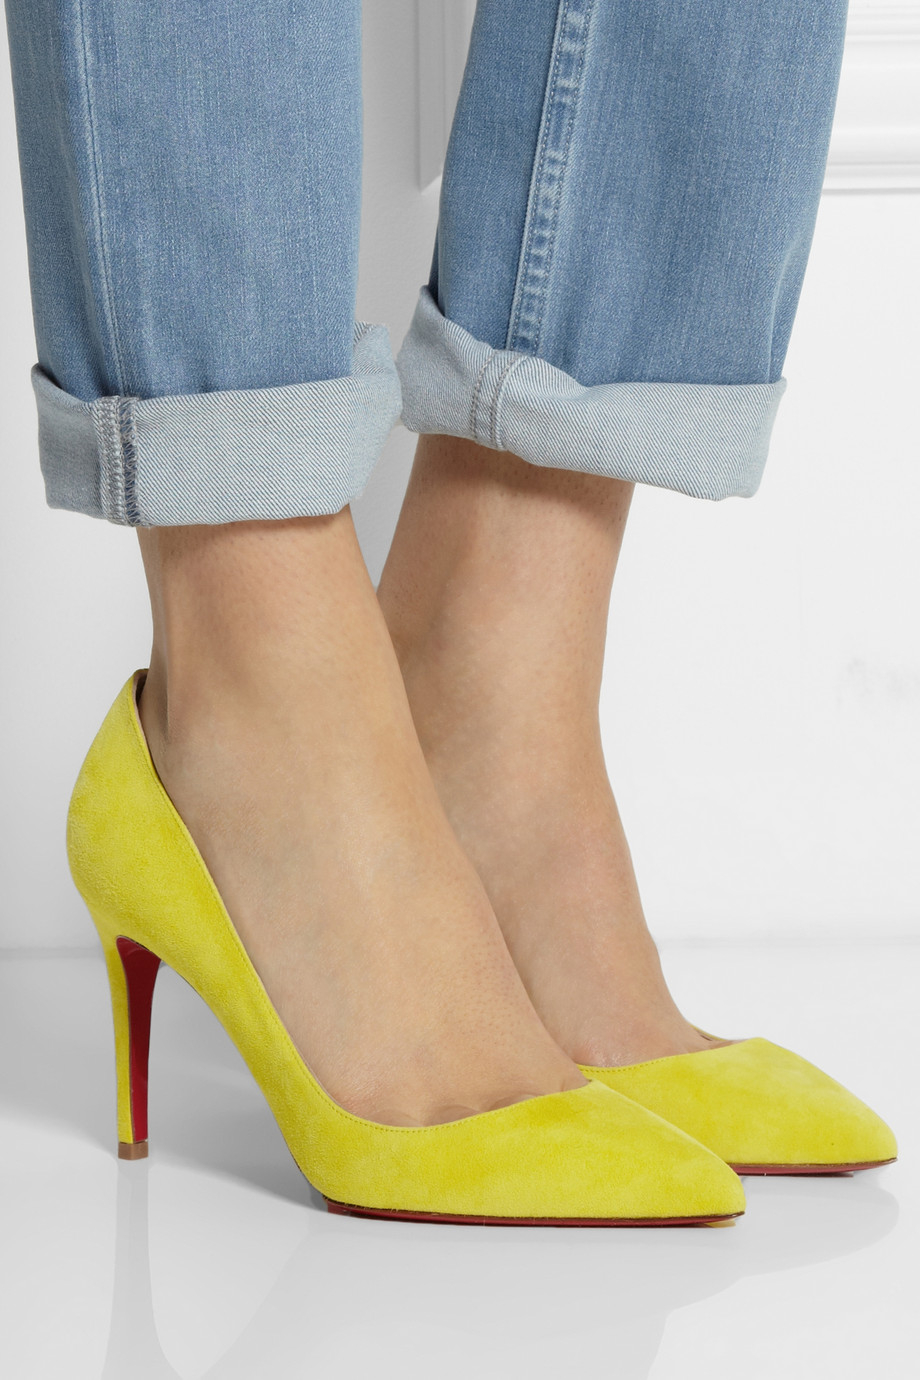 5d9774293bd3 Gallery. Previously sold at  NET-A-PORTER · Women s Yellow Heels Women s Christian  Louboutin Pigalle